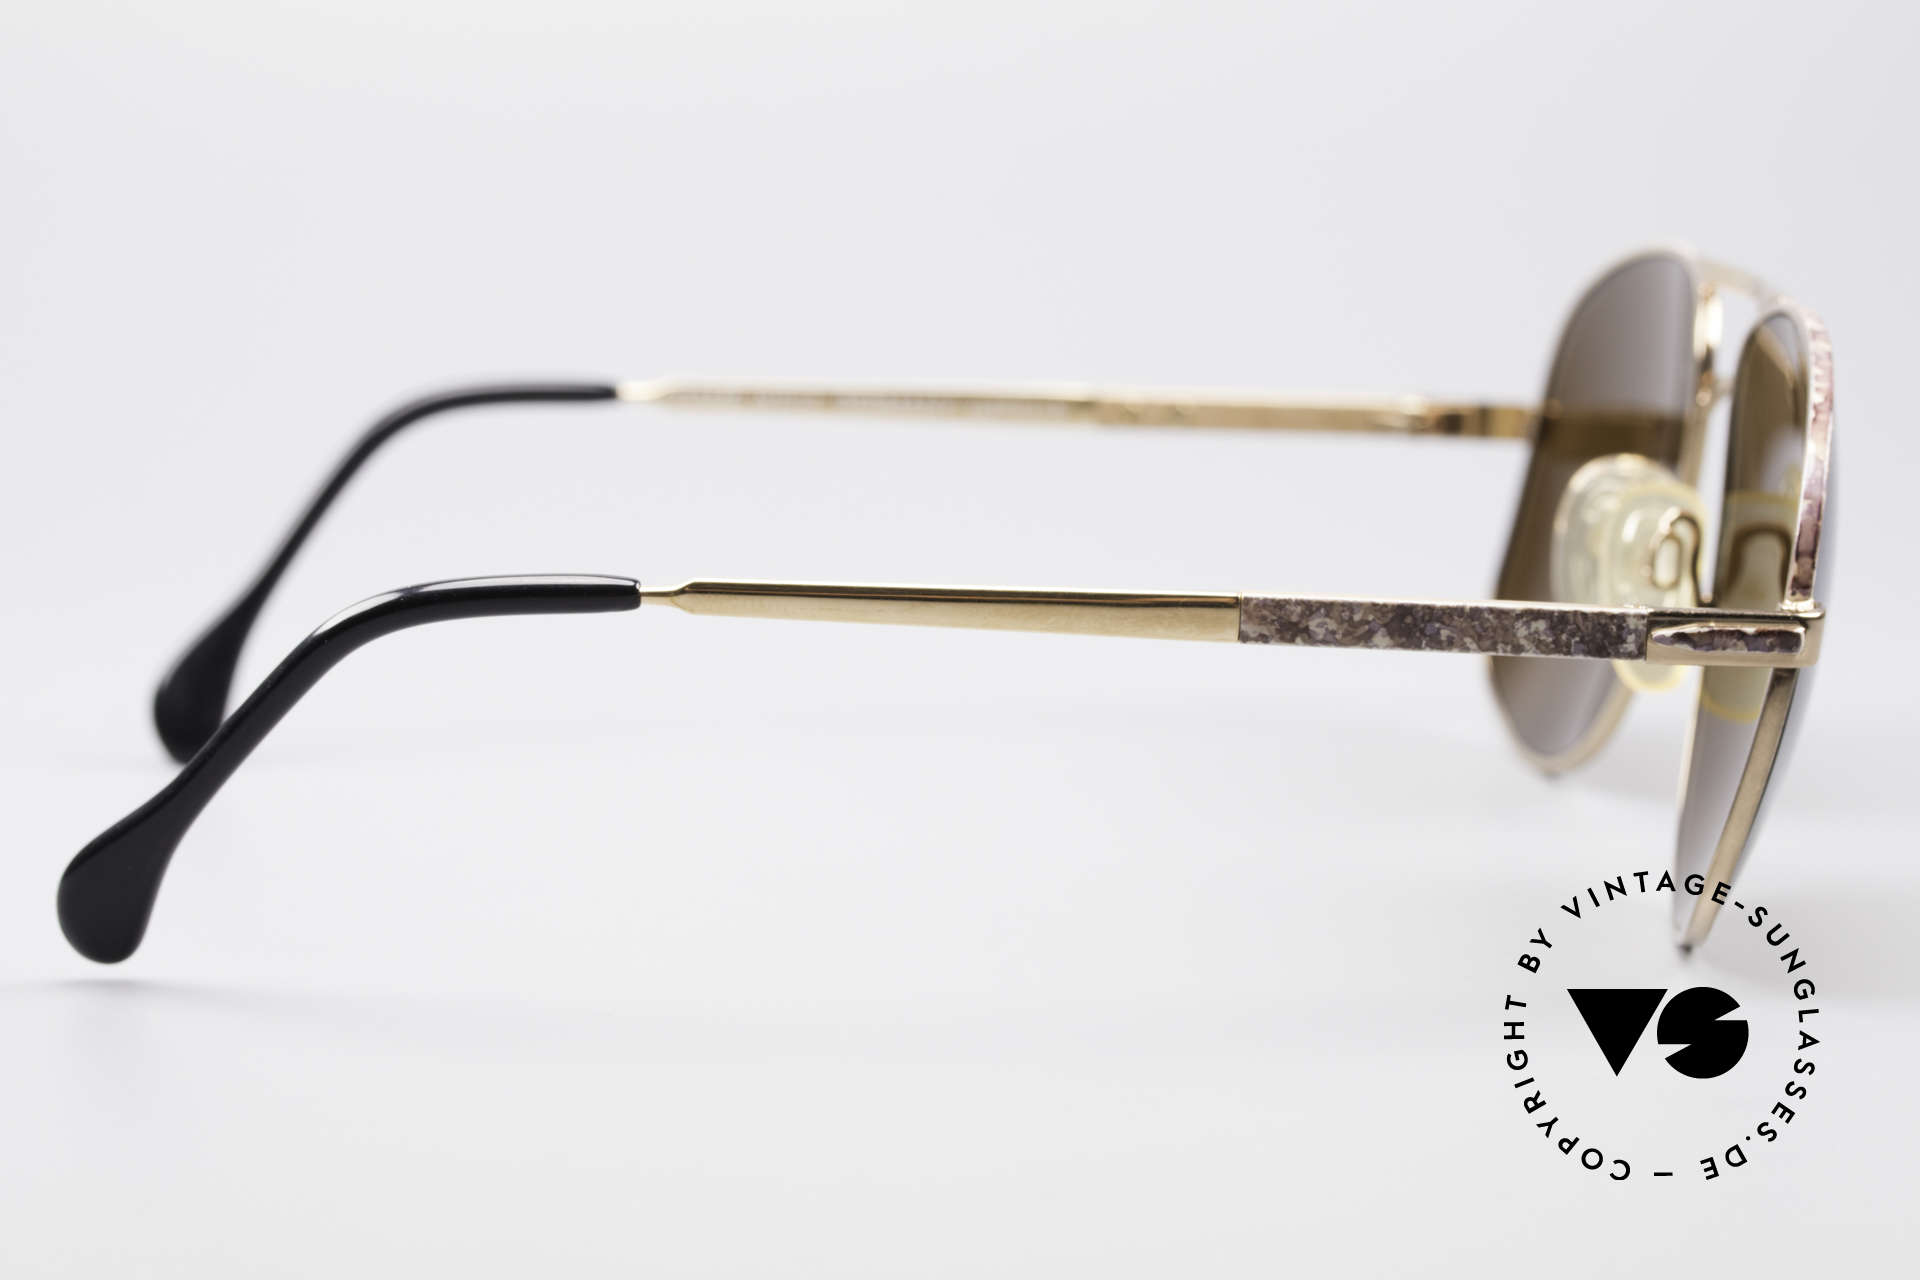 Zollitsch Cadre 8 18k Gold Plated Sunglasses, NO RETRO fashion, but a rare 30 years old ORIGINAL, Made for Men